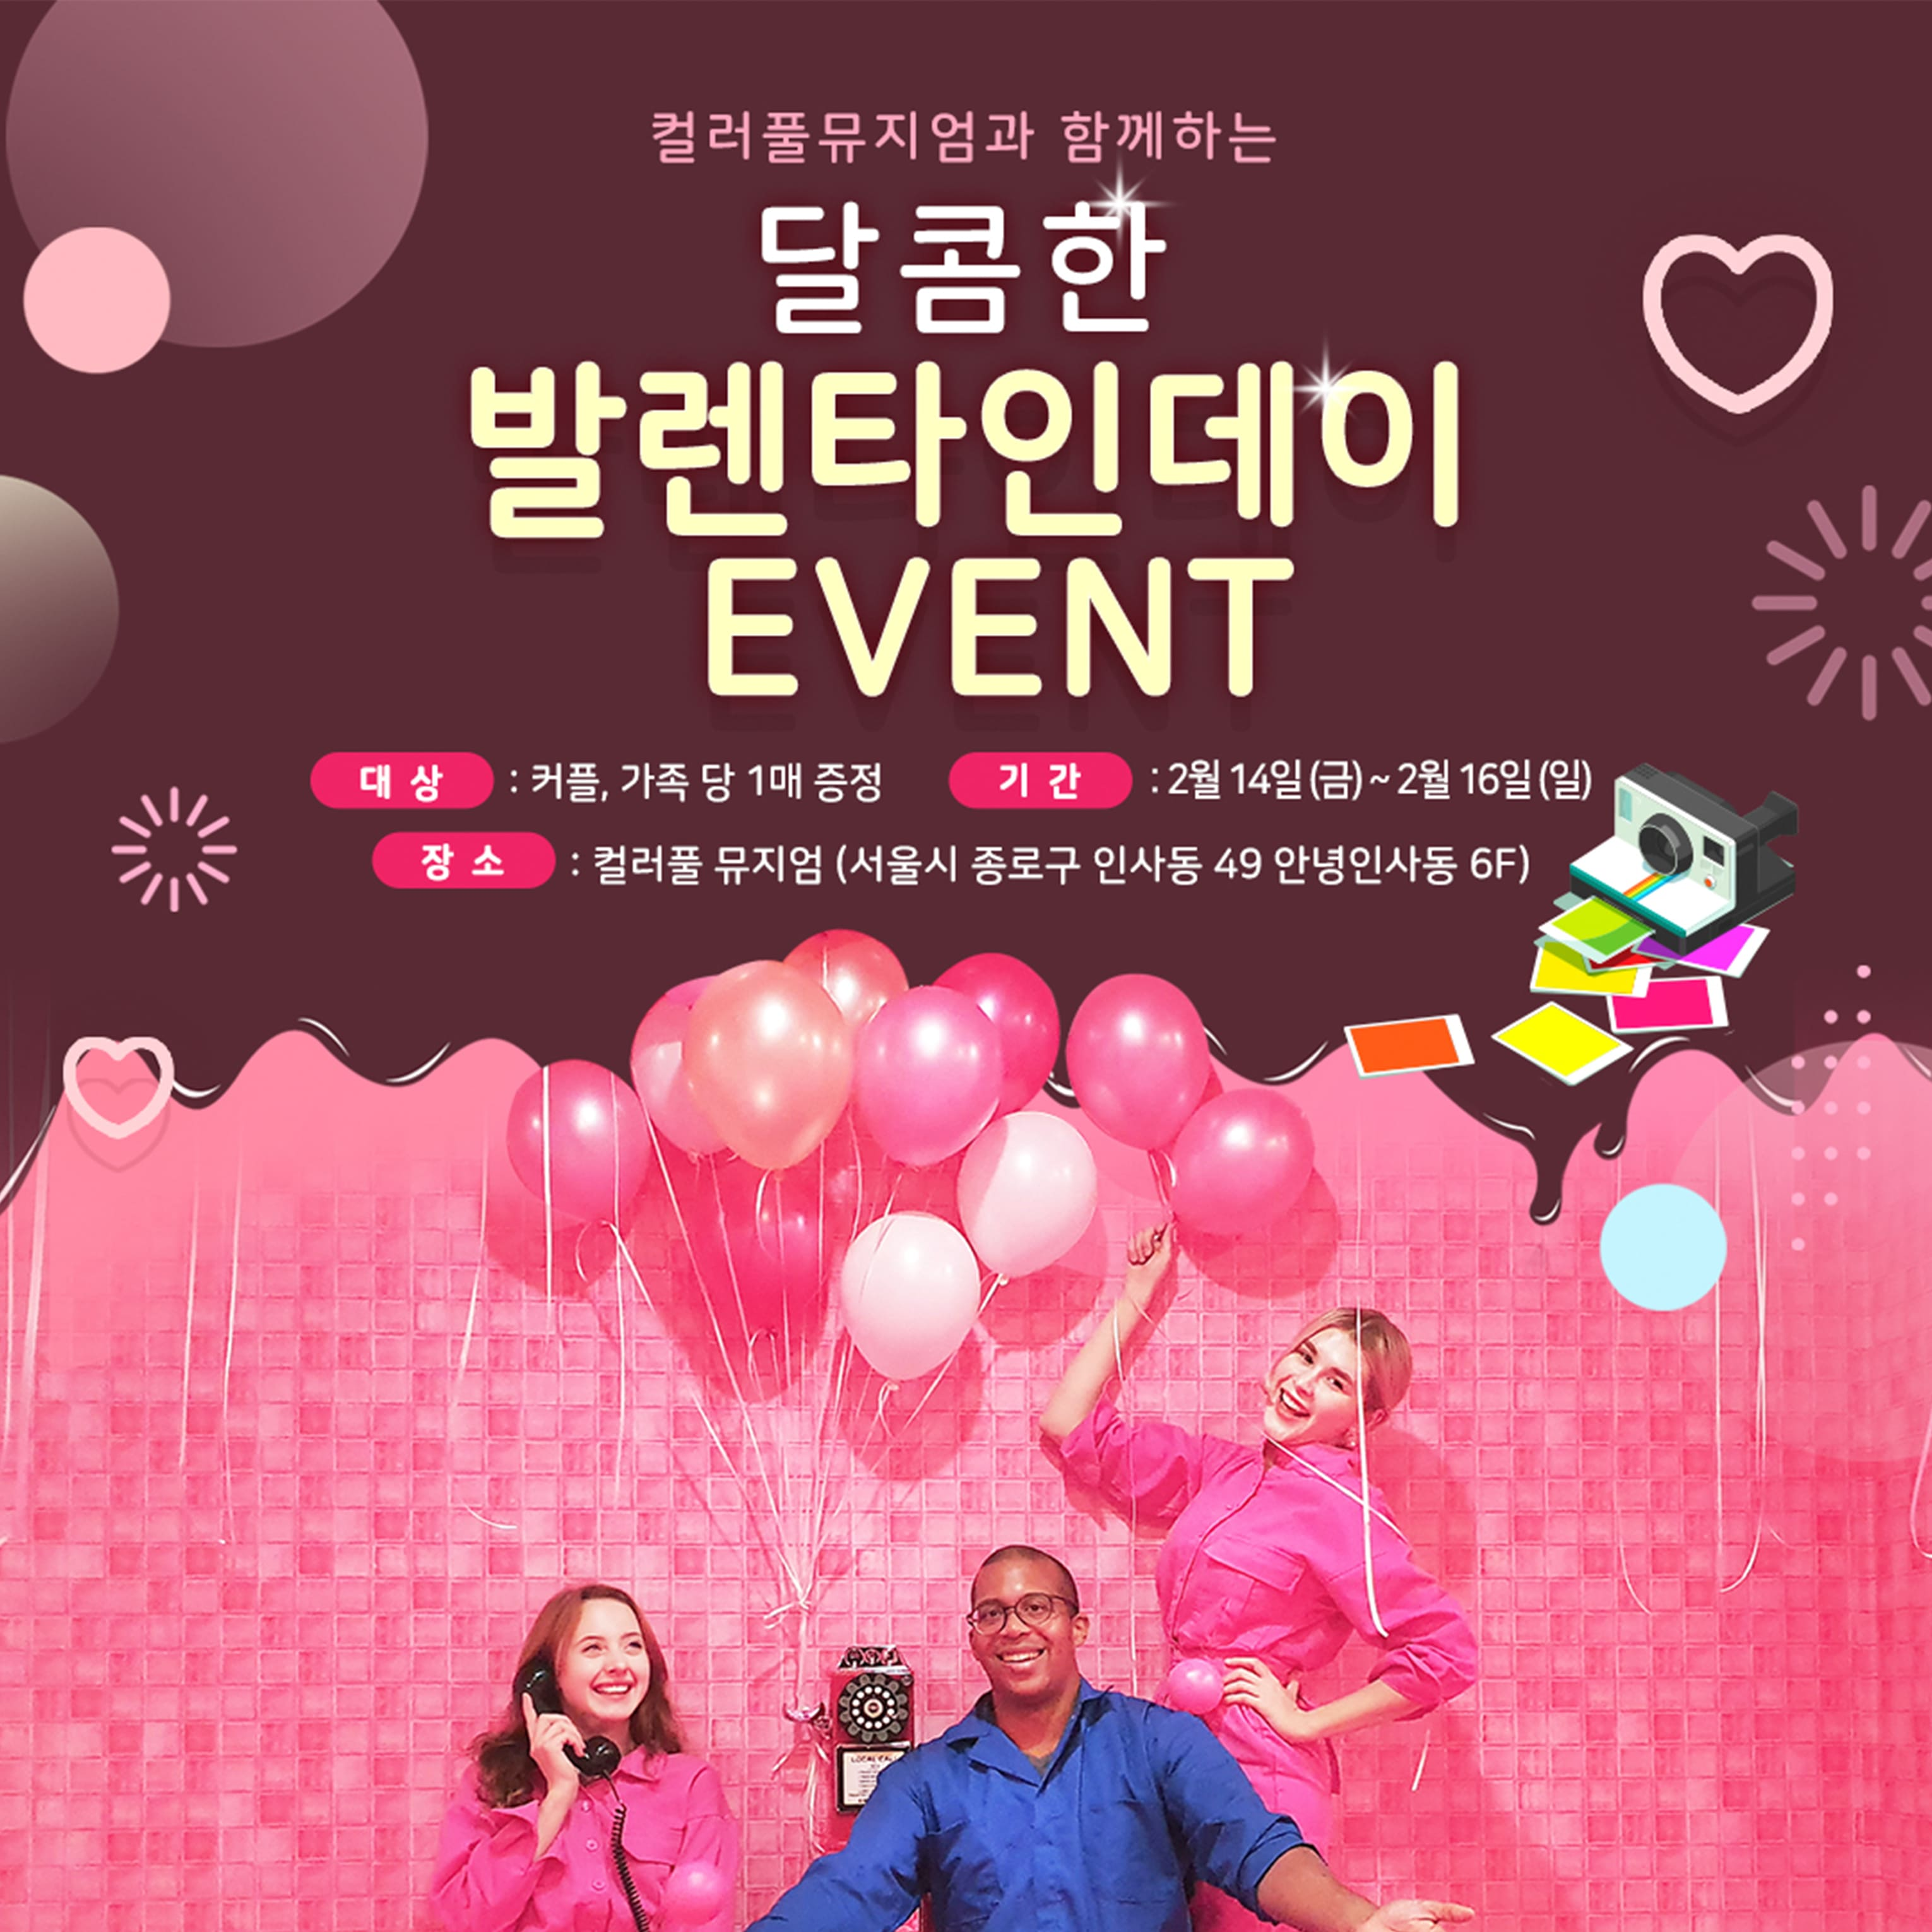 ../images/event/zh-CN/2000207_Event_Valentine.jpg